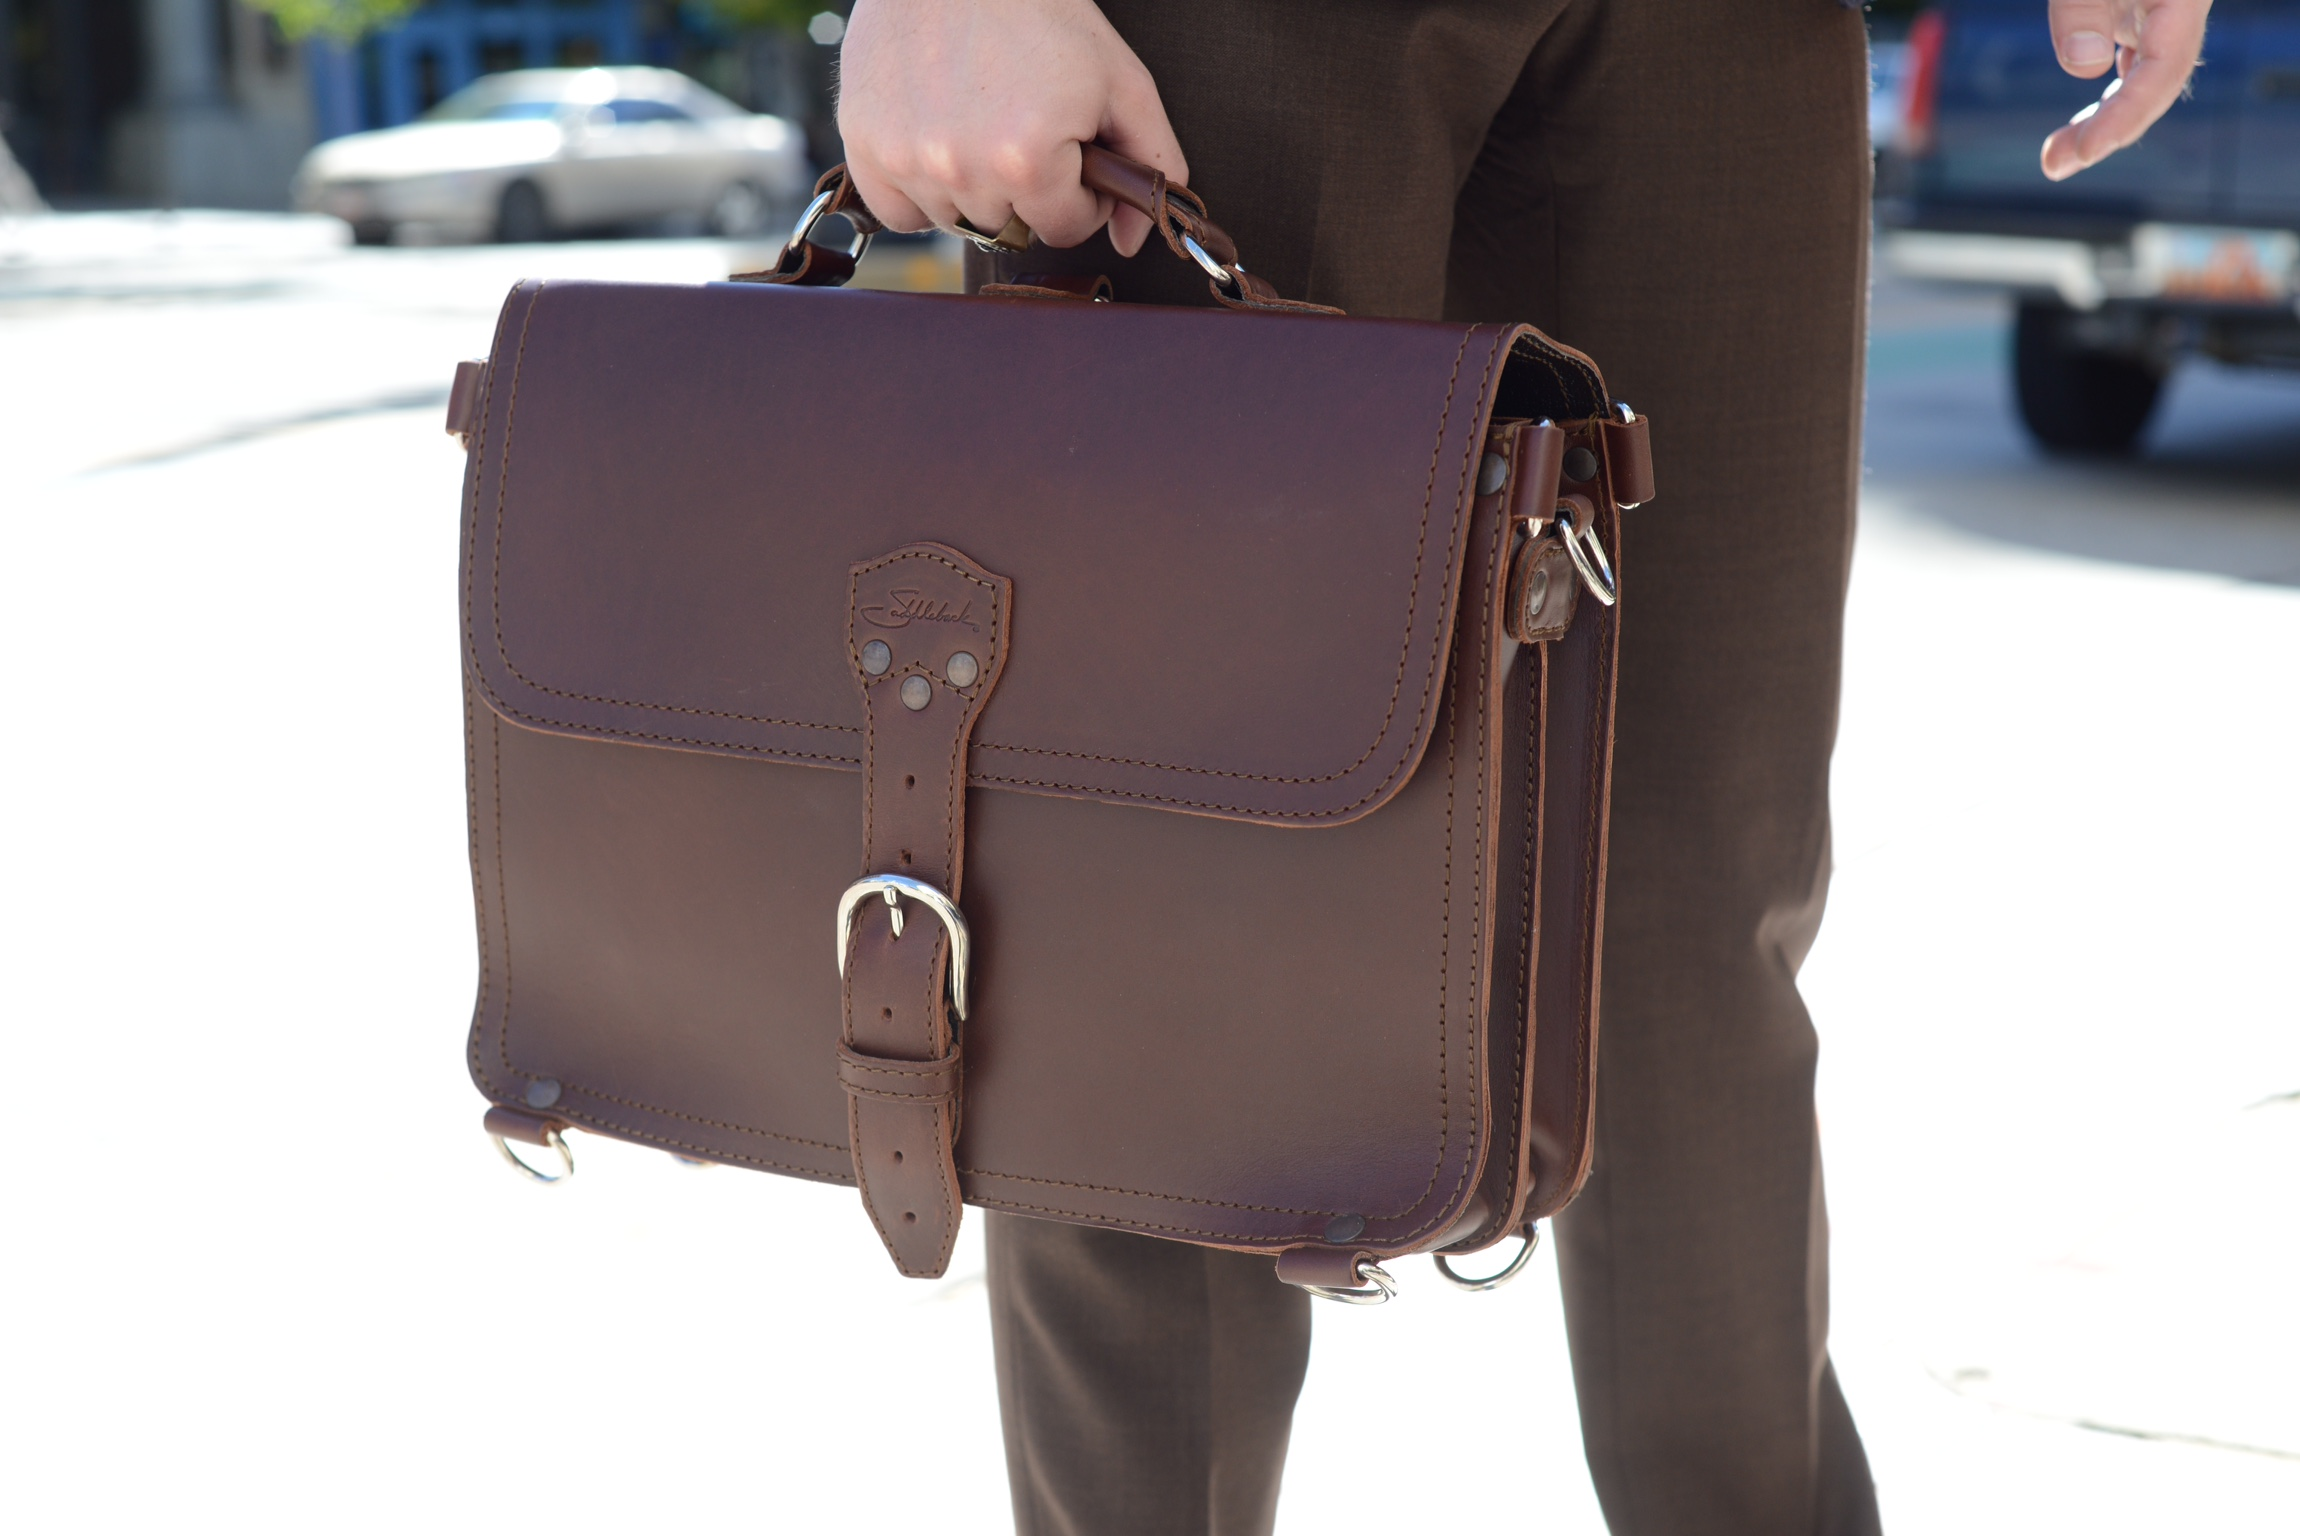 Saddleback Briefcase Review and Giveaway